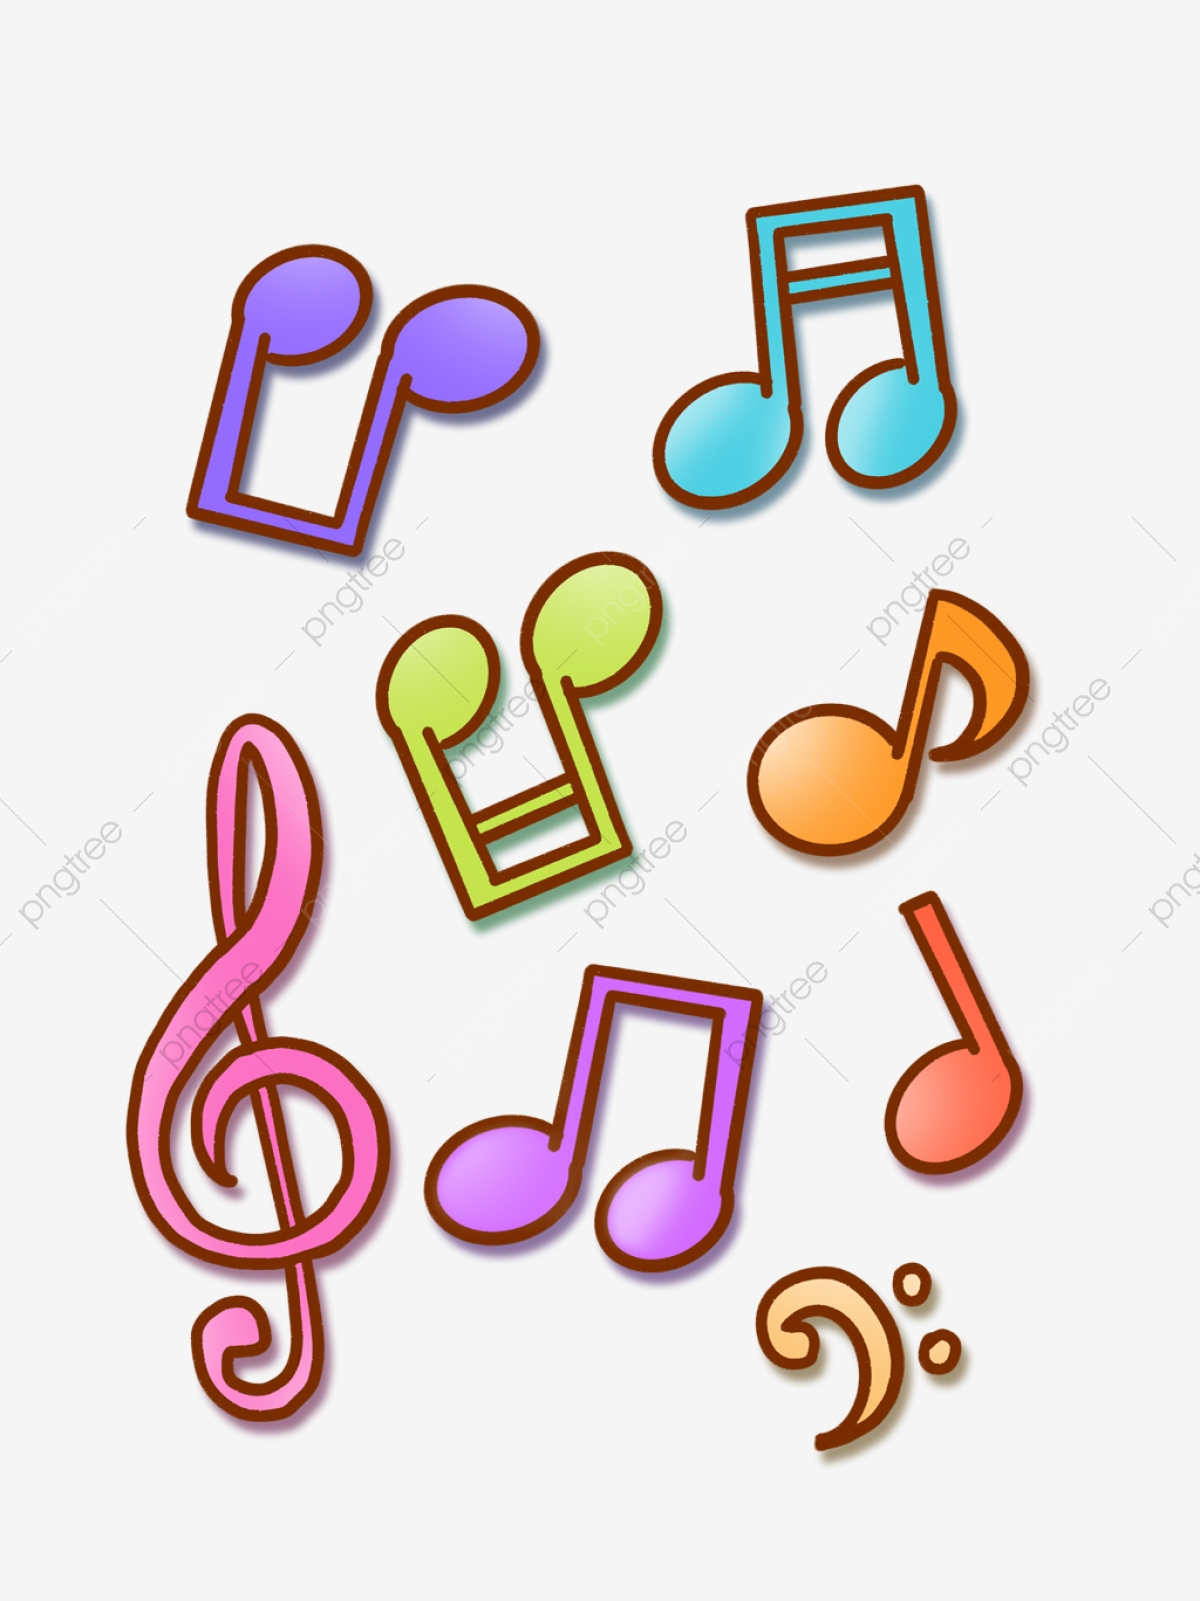 cartoon music musical notes symbols colorful notas clipart hand musicales musicais symbol coloridas splash drawn simbolos drawing crayon clip commercial